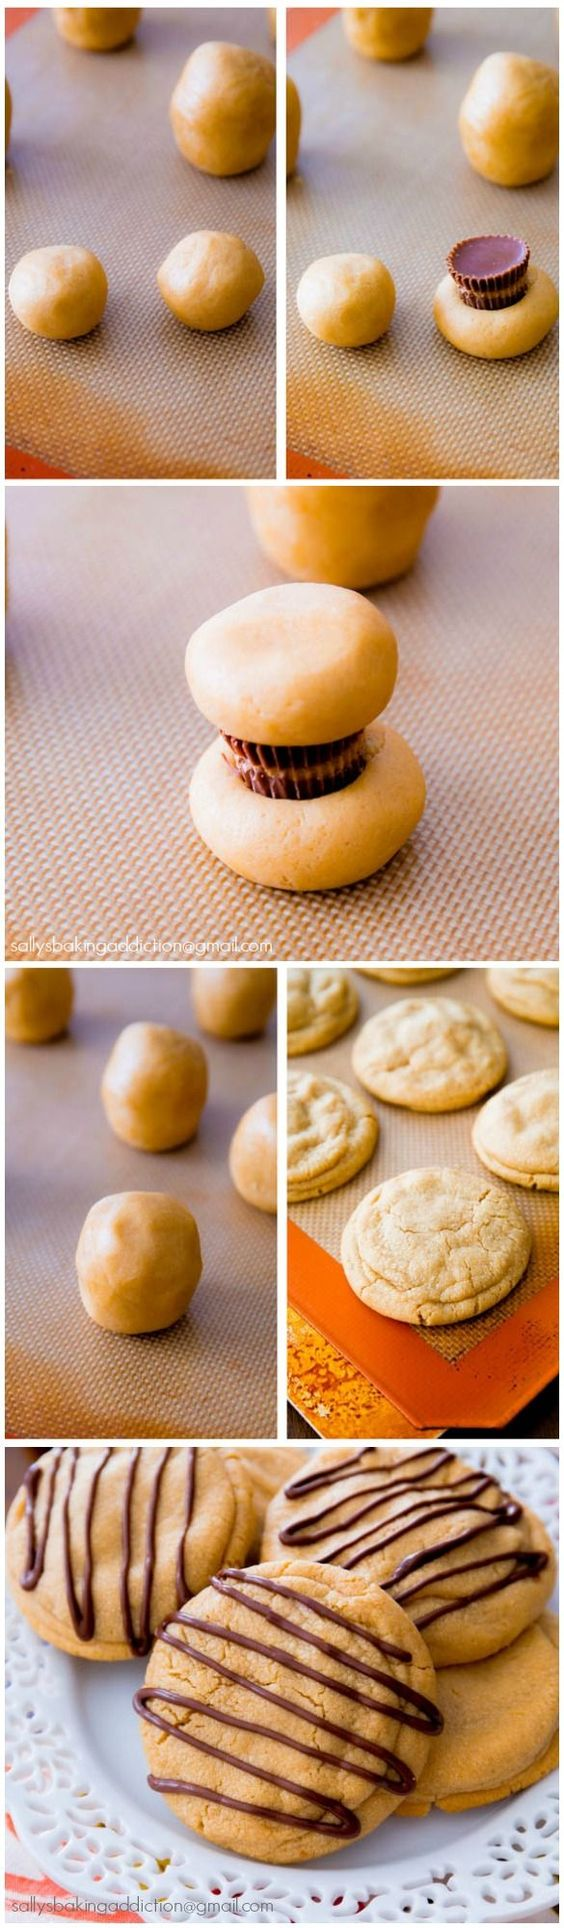 Reese's Stuffed Peanut Butter Cookies. Oh BOY! @Lori Bearden Bearden Wood can you PLEASE make these for Easter?